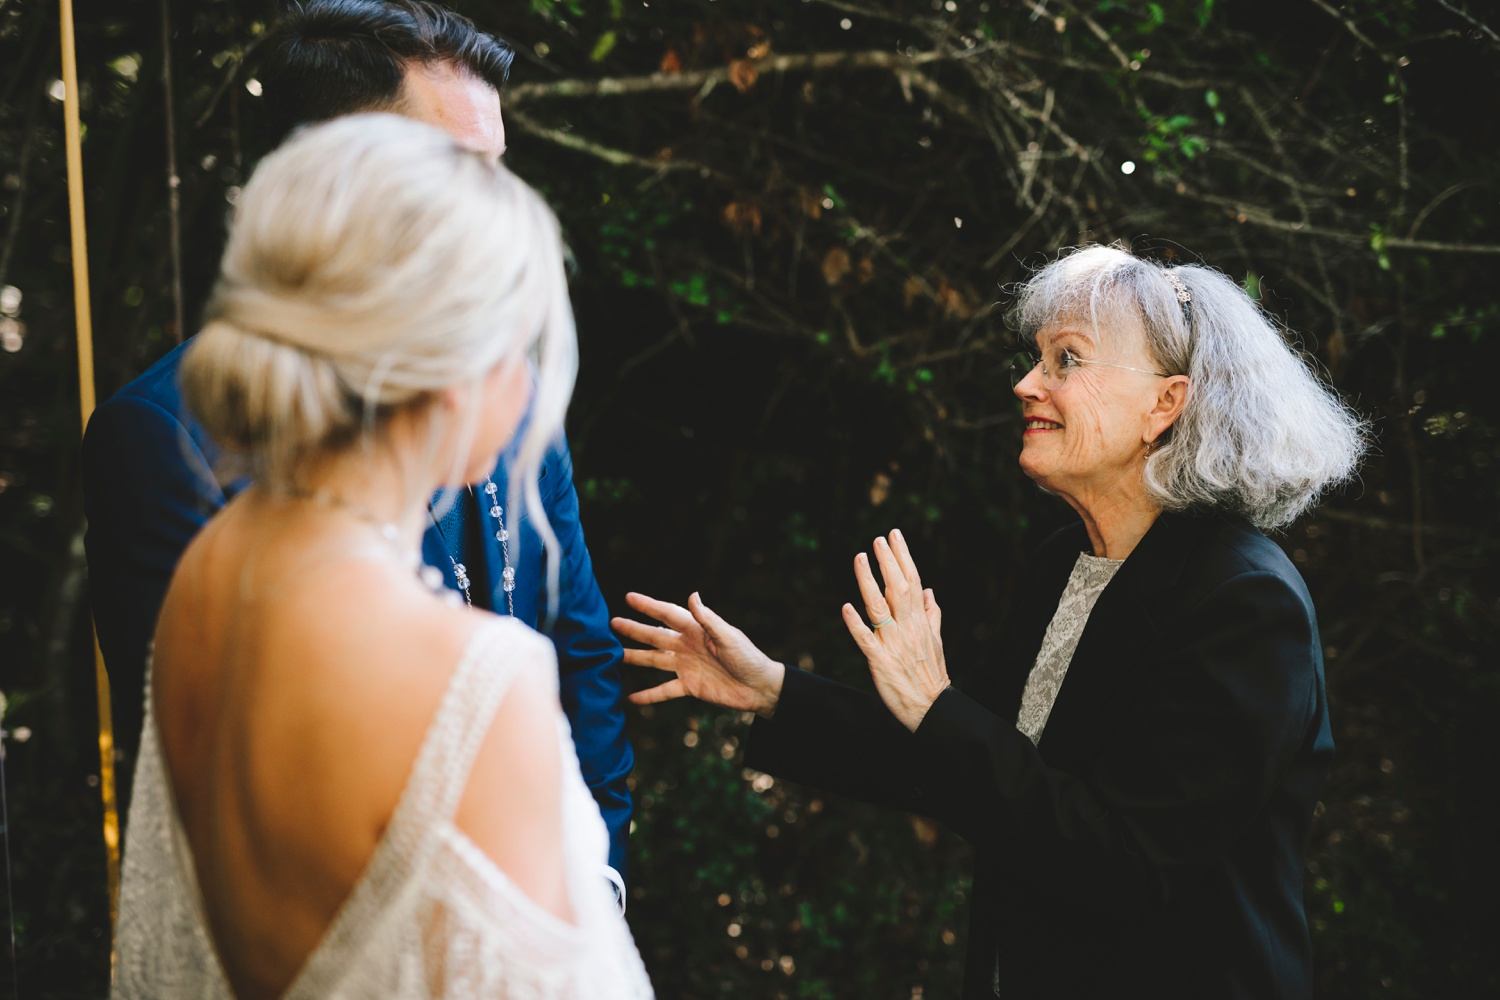 charlie_ray_photography_runaway_romance_elopement_emily_moon_plett_simple_boho_wedding_south_africa_bohemium_0051.jpg